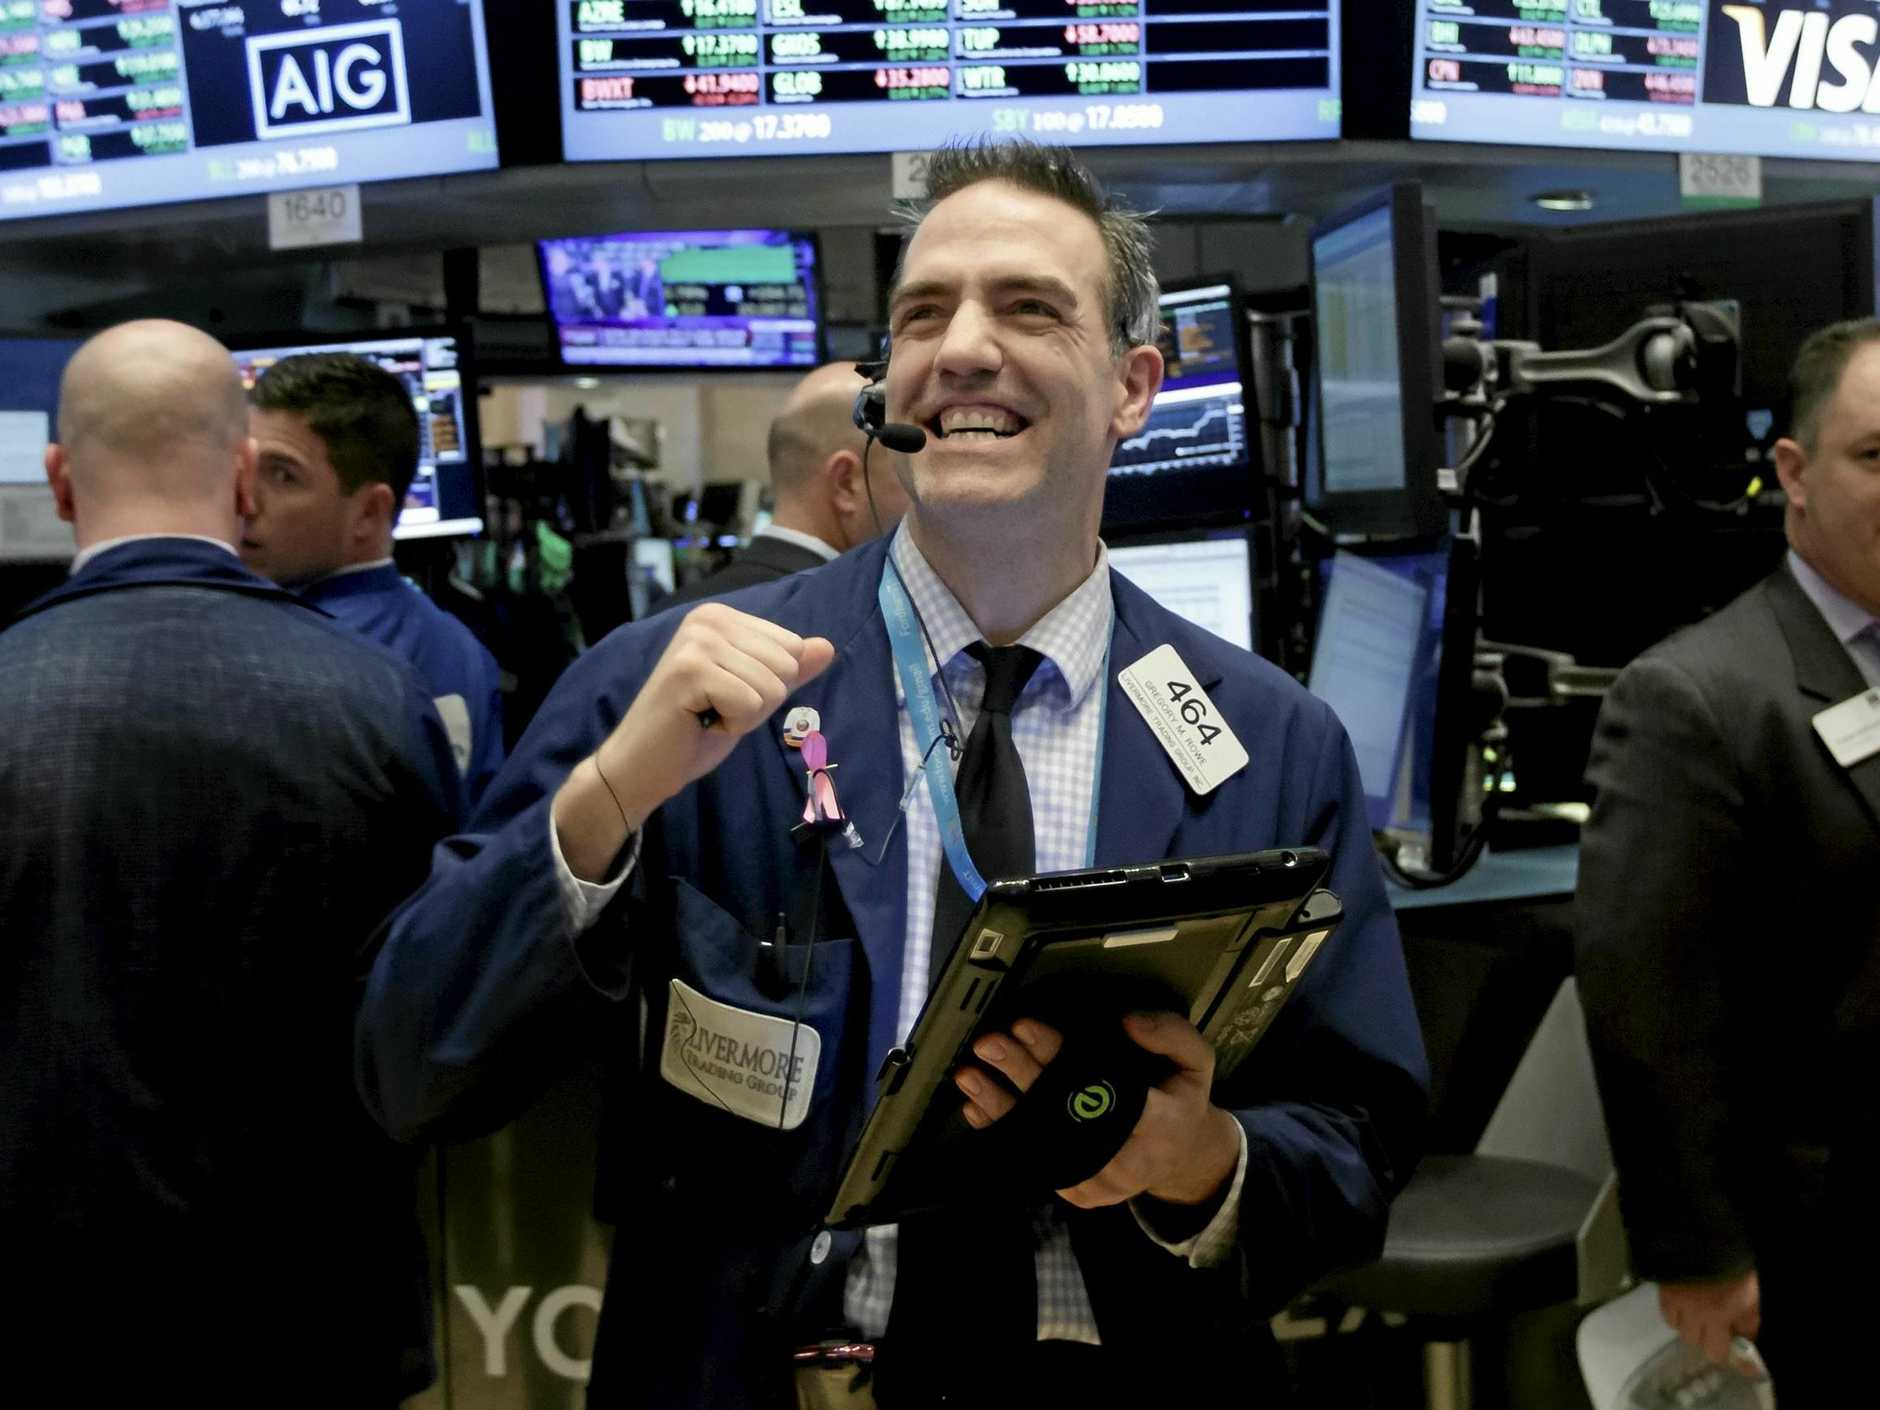 A trader in the New York Stock Exchange reacts at the closing bell as the Dow Jones Industrial Average closes above the 20,000 mark for the first time, in January this year.